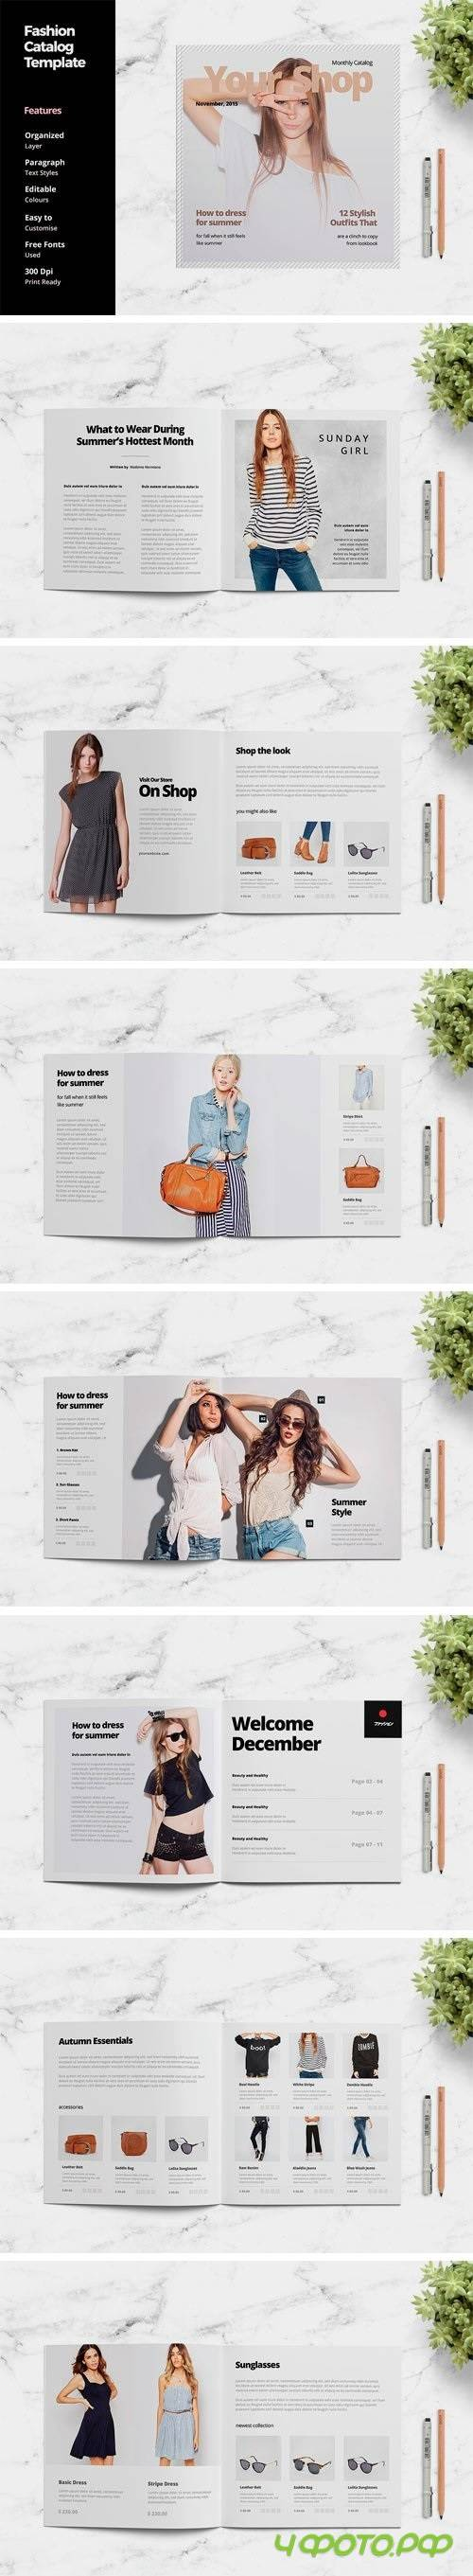 Fashion Catalog Template - 1409377